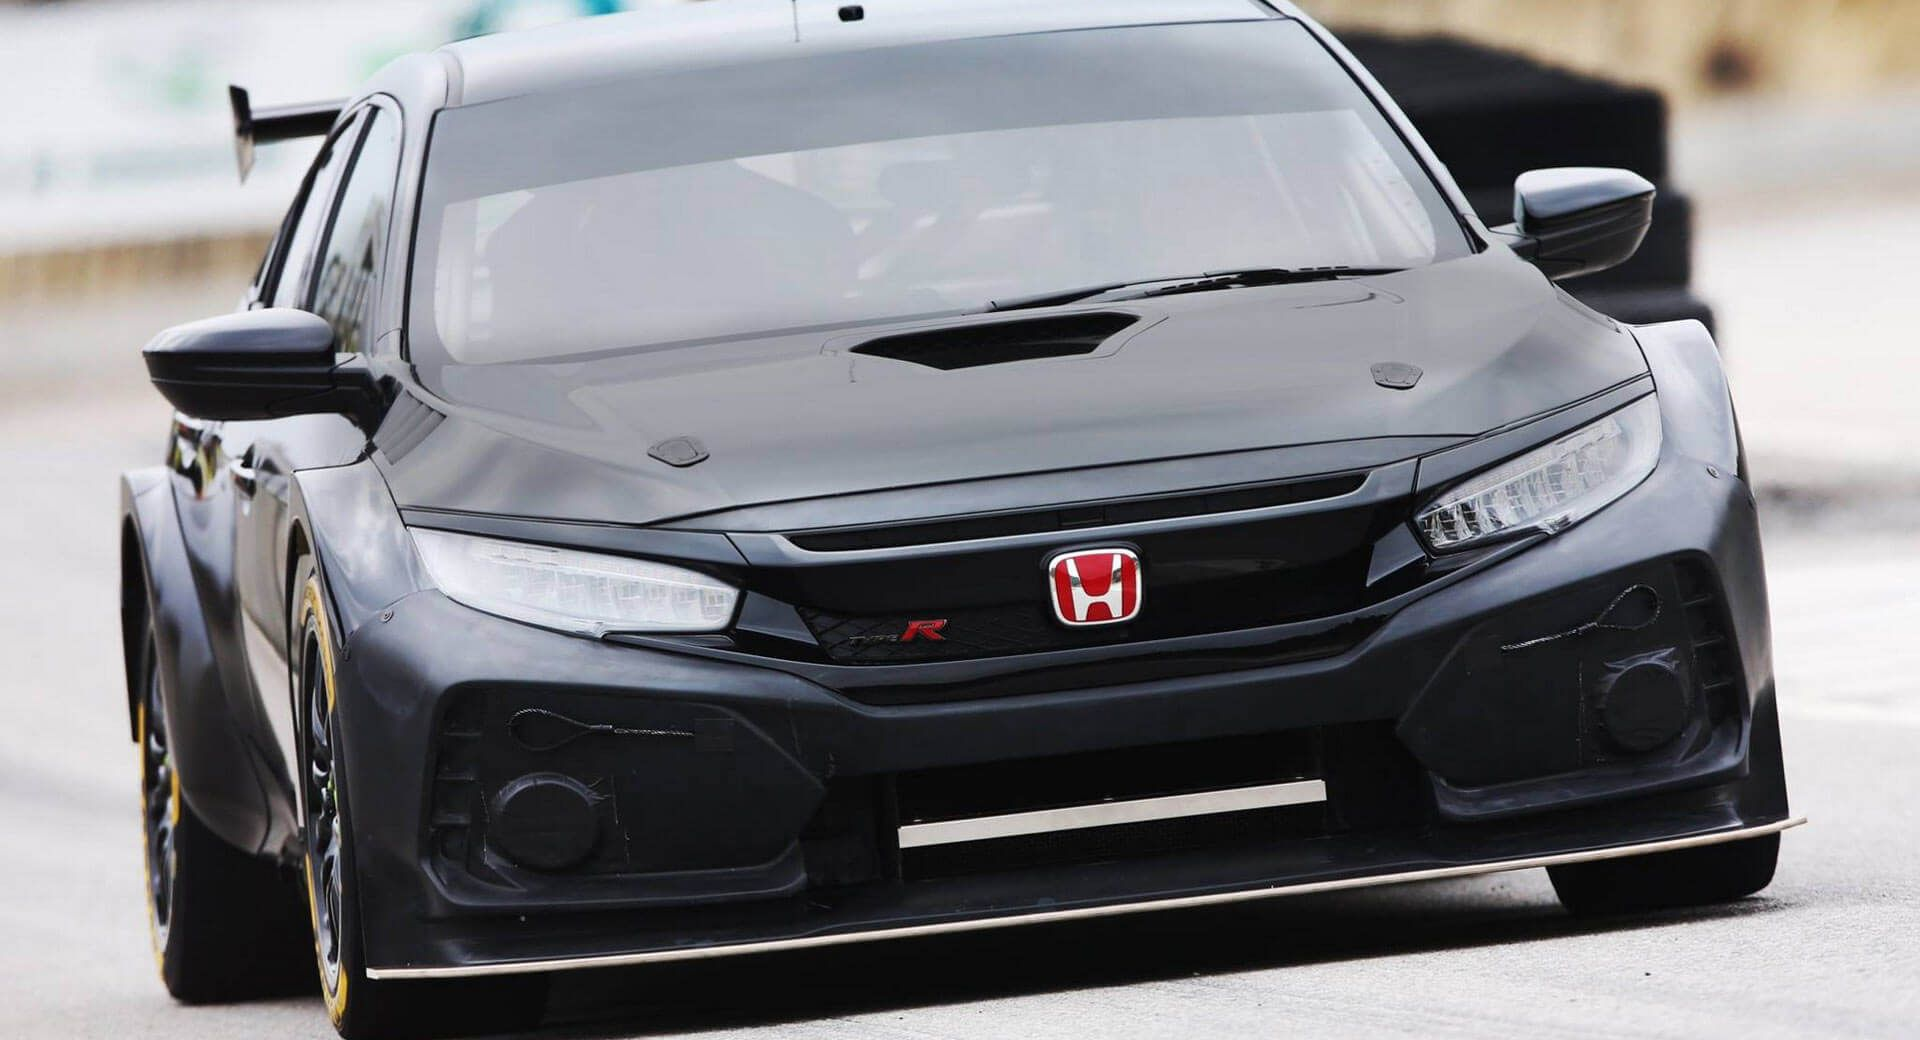 New Widebody Honda Civic Type R For 2018 Btcc Is A True Boy Racer